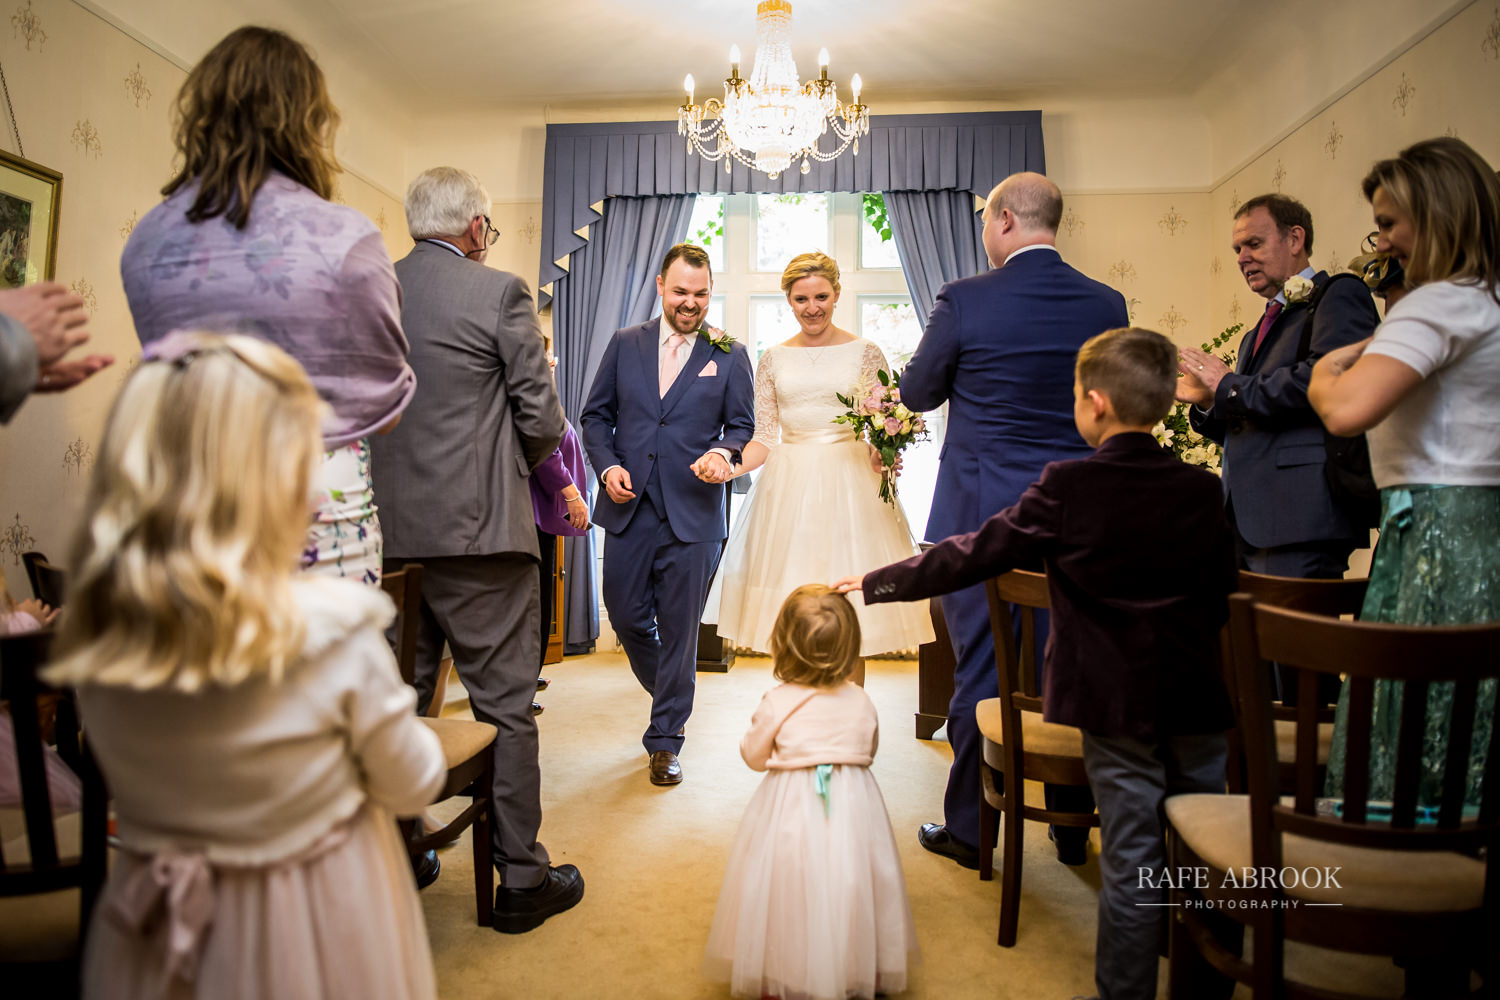 thursley village hall guildford surrey wedding hertfordshire wedding photographer-1175.jpg